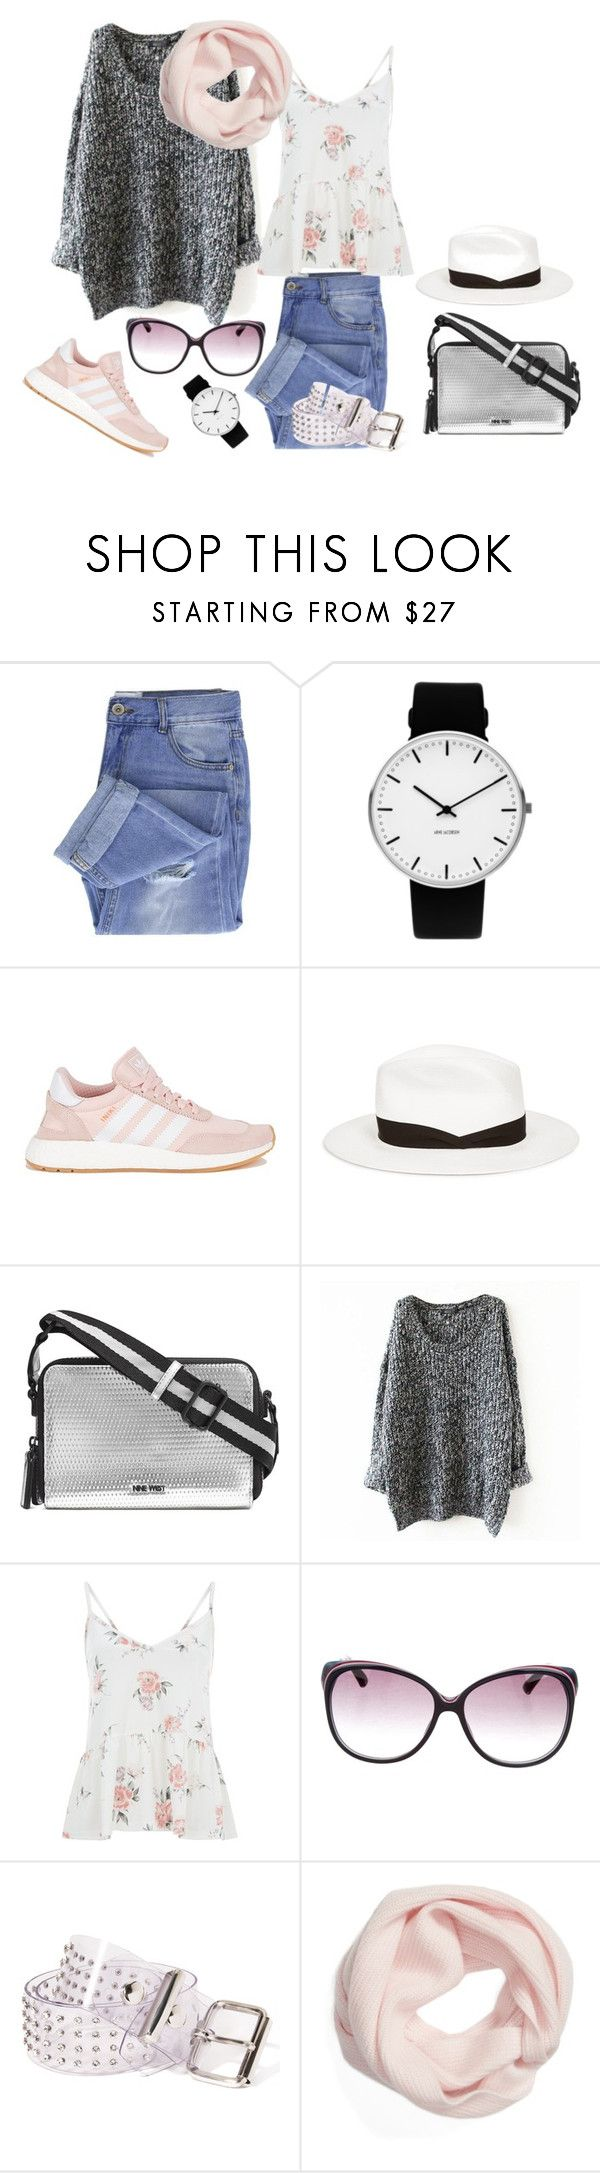 """Еl Pacifico#NEVa"" by explorer-15096452111 ❤ liked on Polyvore featuring Taya, Rosendahl, adidas, rag & bone, Nine West, Gucci, Funk Plus and Halogen"